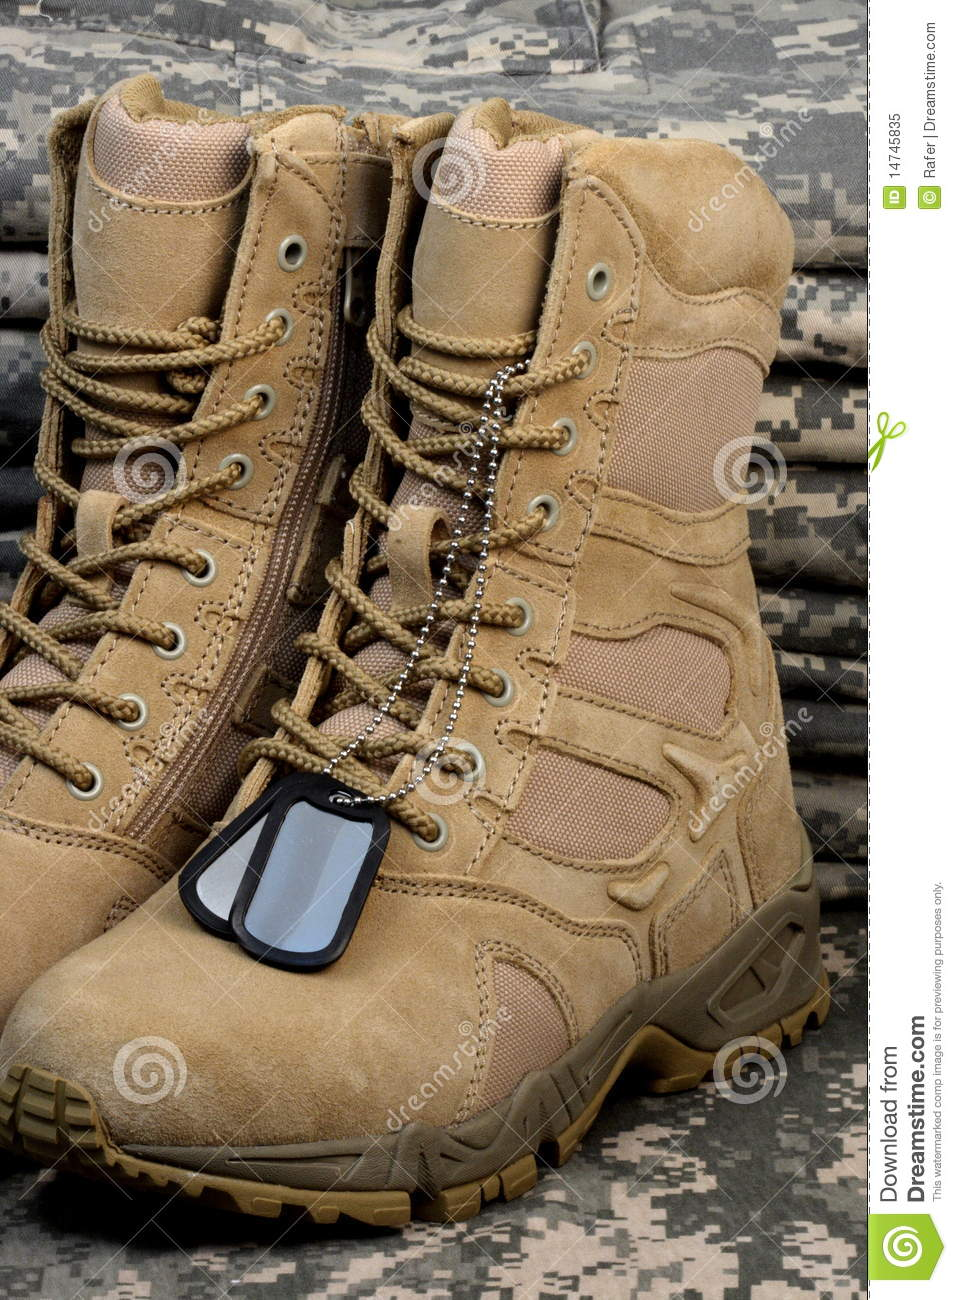 Desert Tactical Boots And Military Tag Chains Stock Image